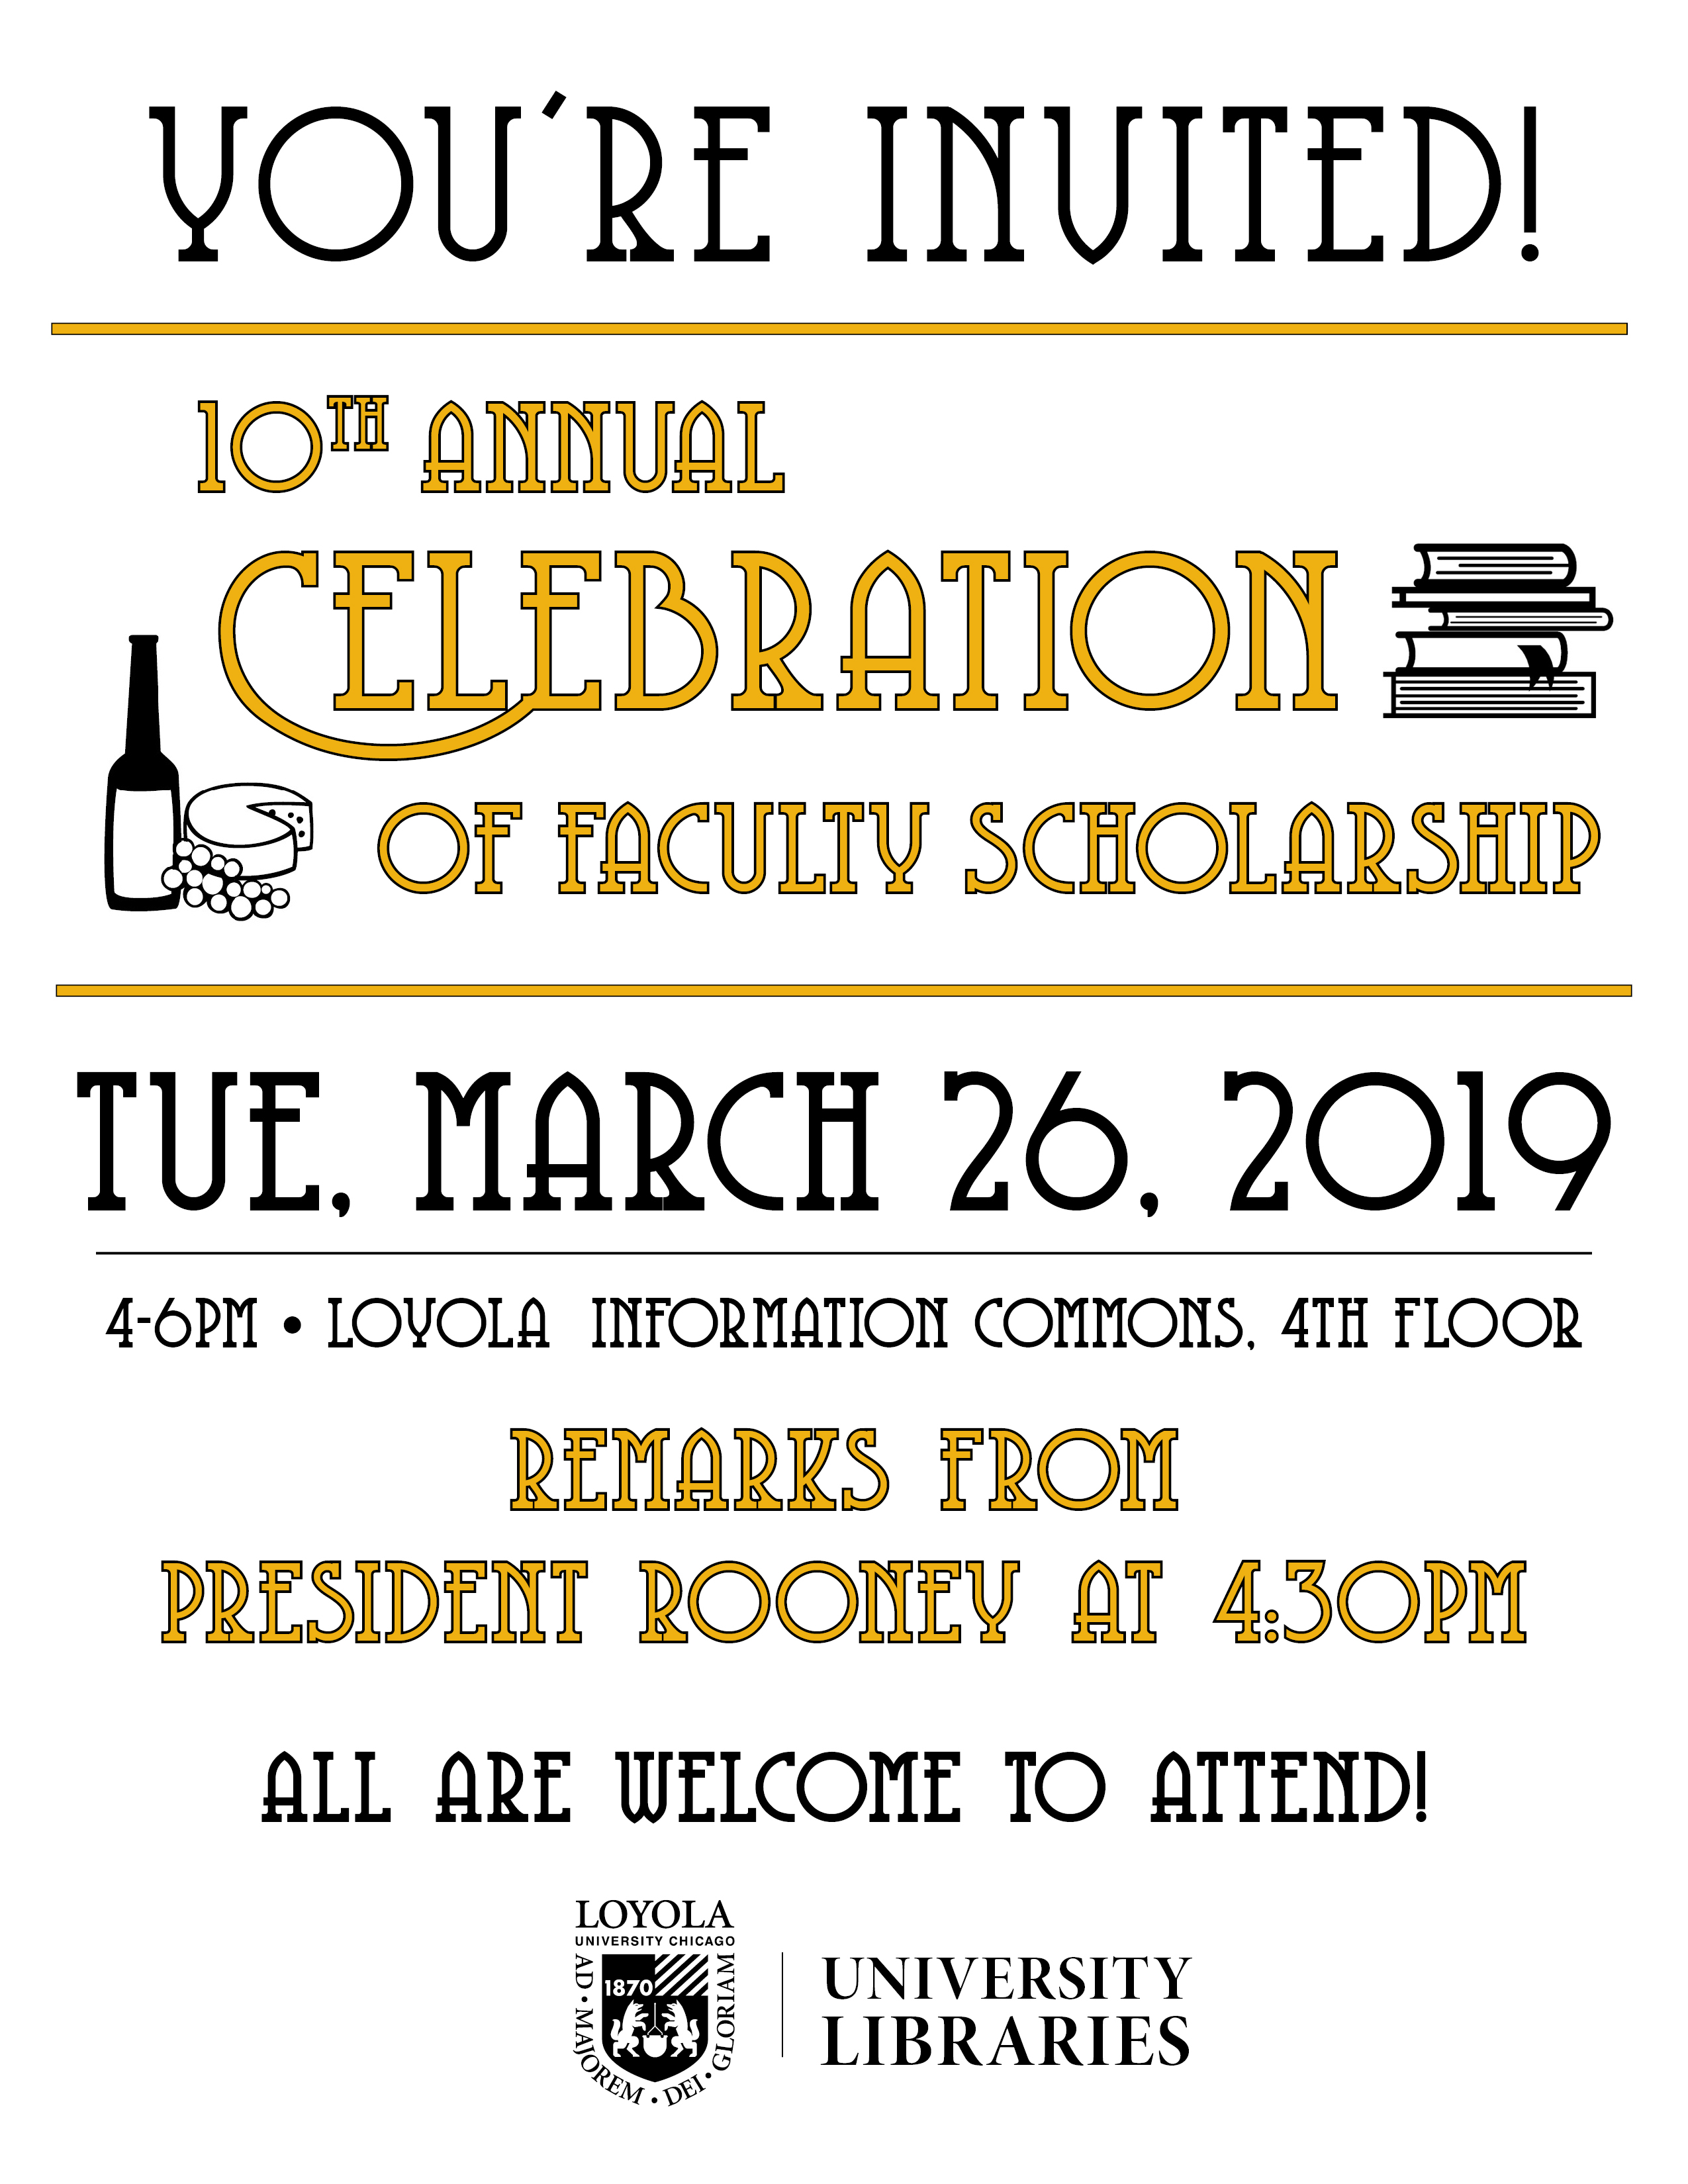 10th Annual Celebration of Faculty Scholarship